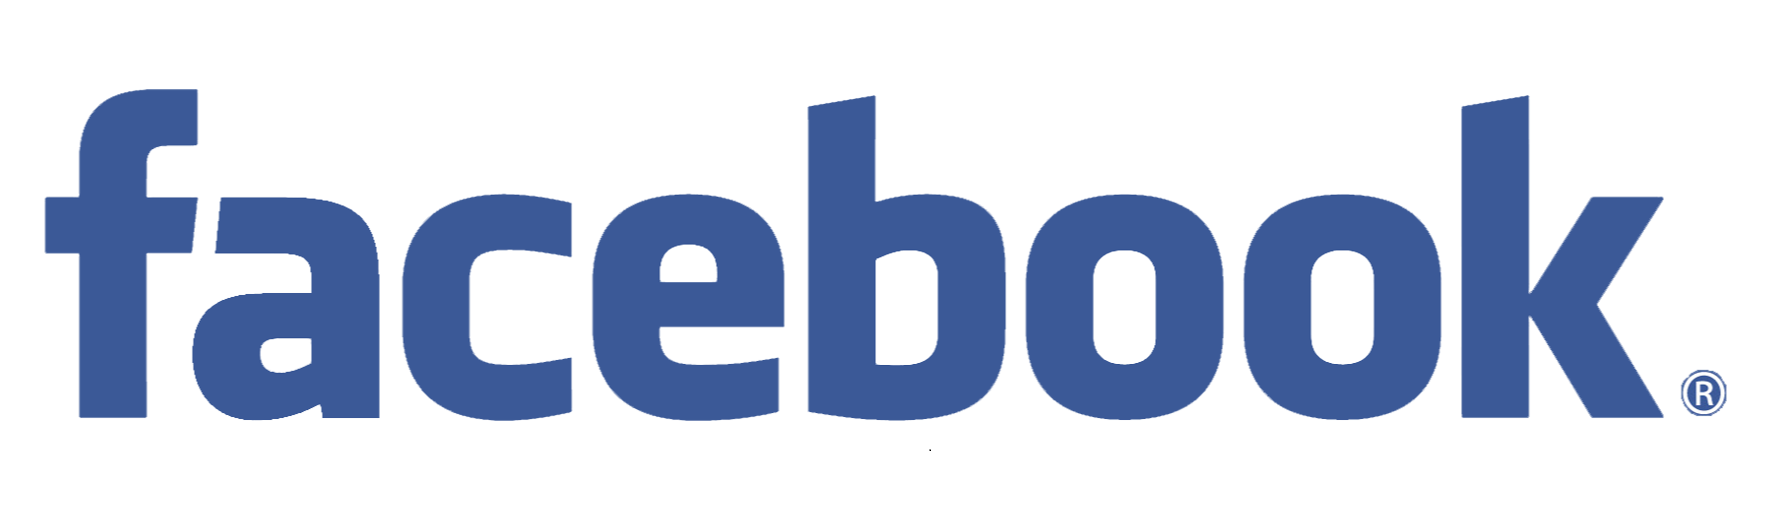 facebook text logo transparent 38355 free icons and png